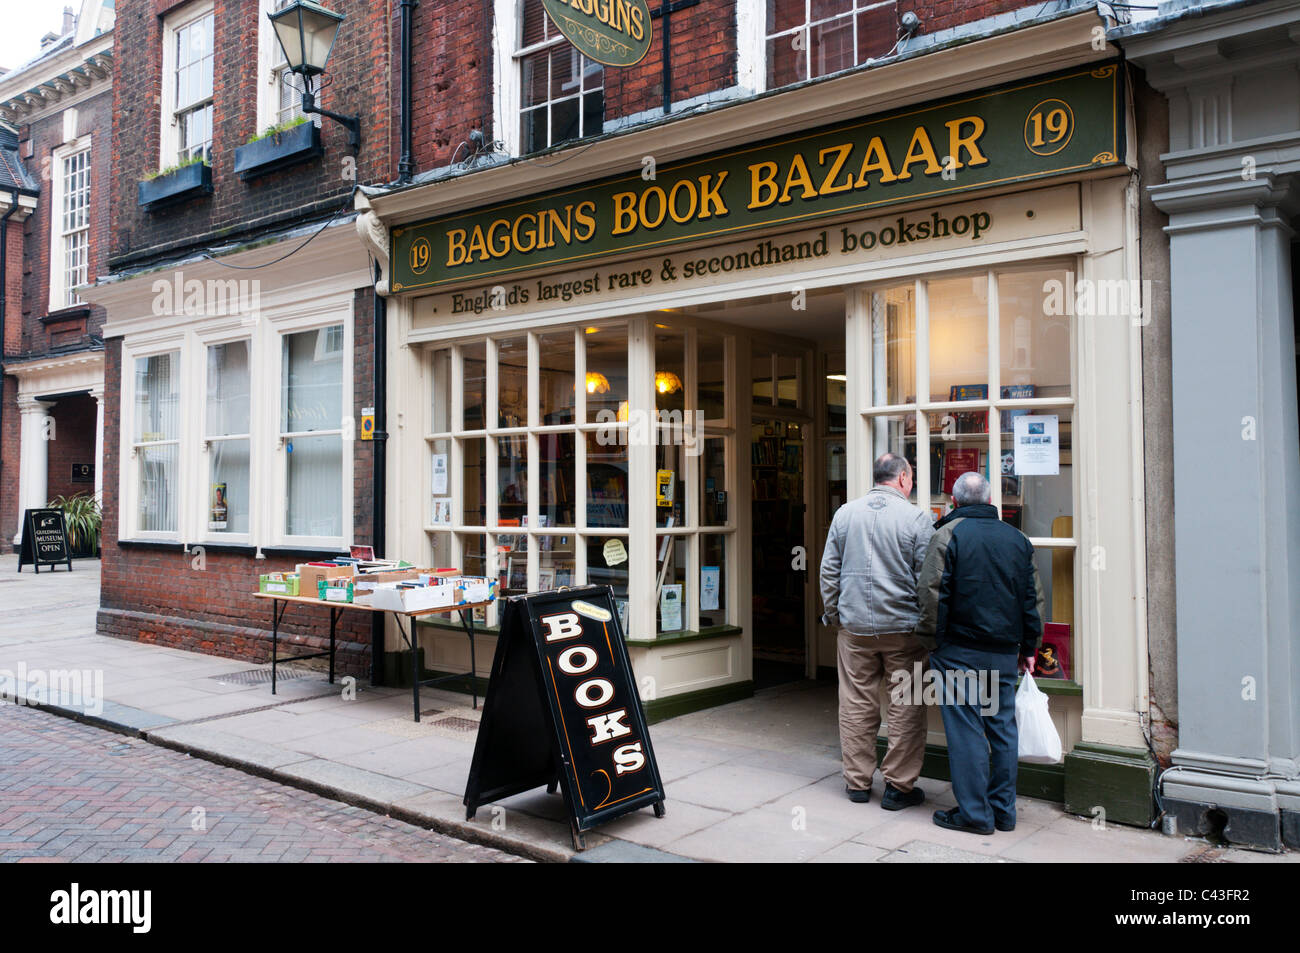 Baggins Book Bazaar in Rochester High Street describes itself as England's largest rare and secondhand bookshop. - Stock Image